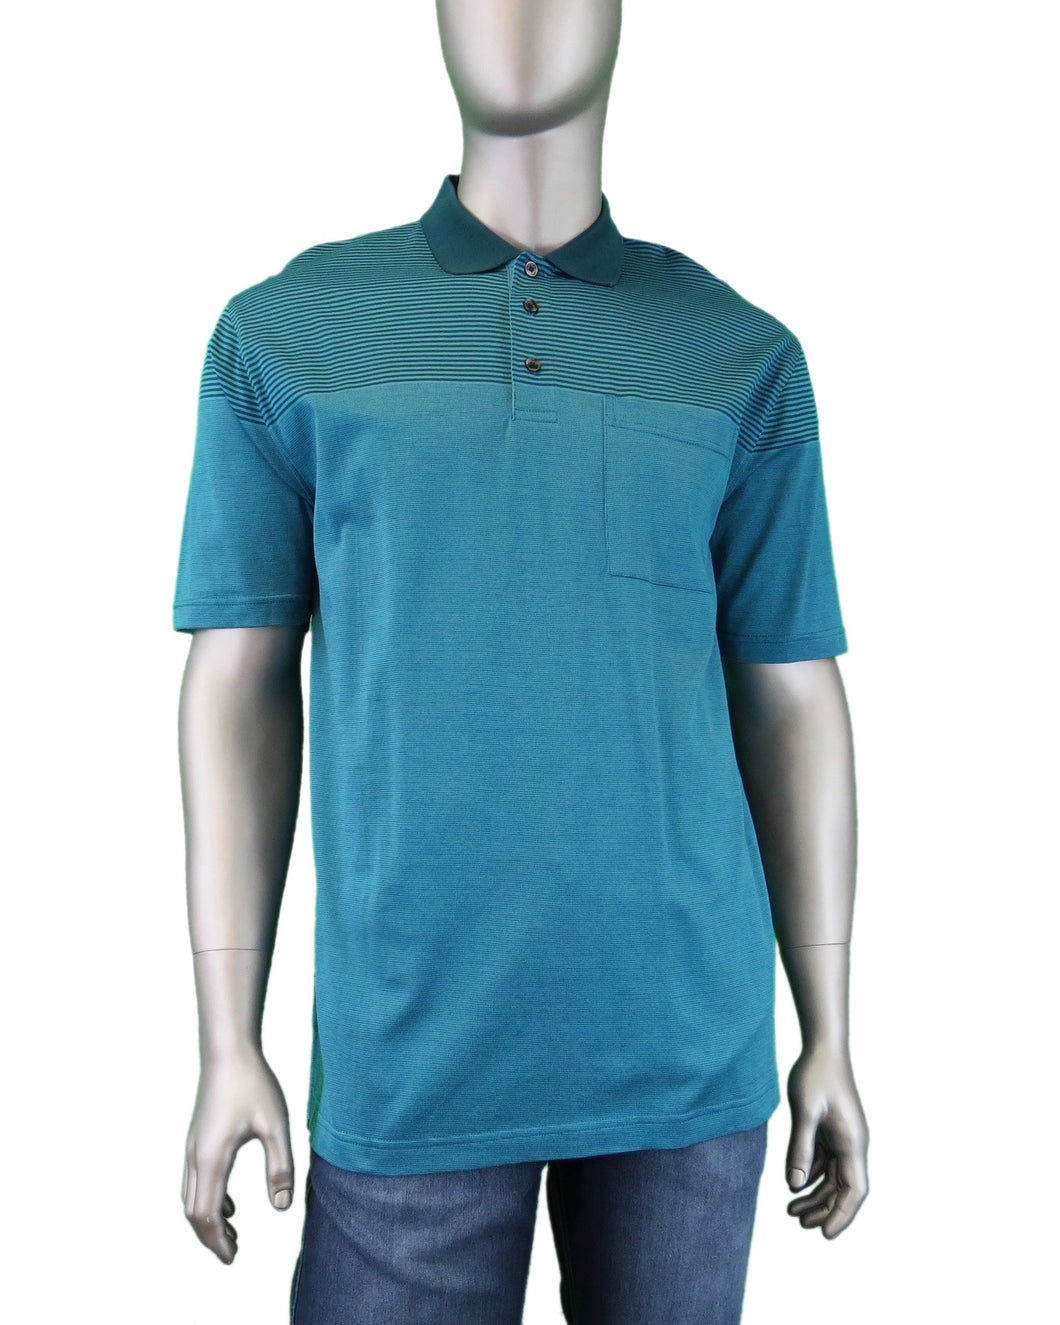 Leo Chevalier | 424534 | Polo T-Shirt | Teal